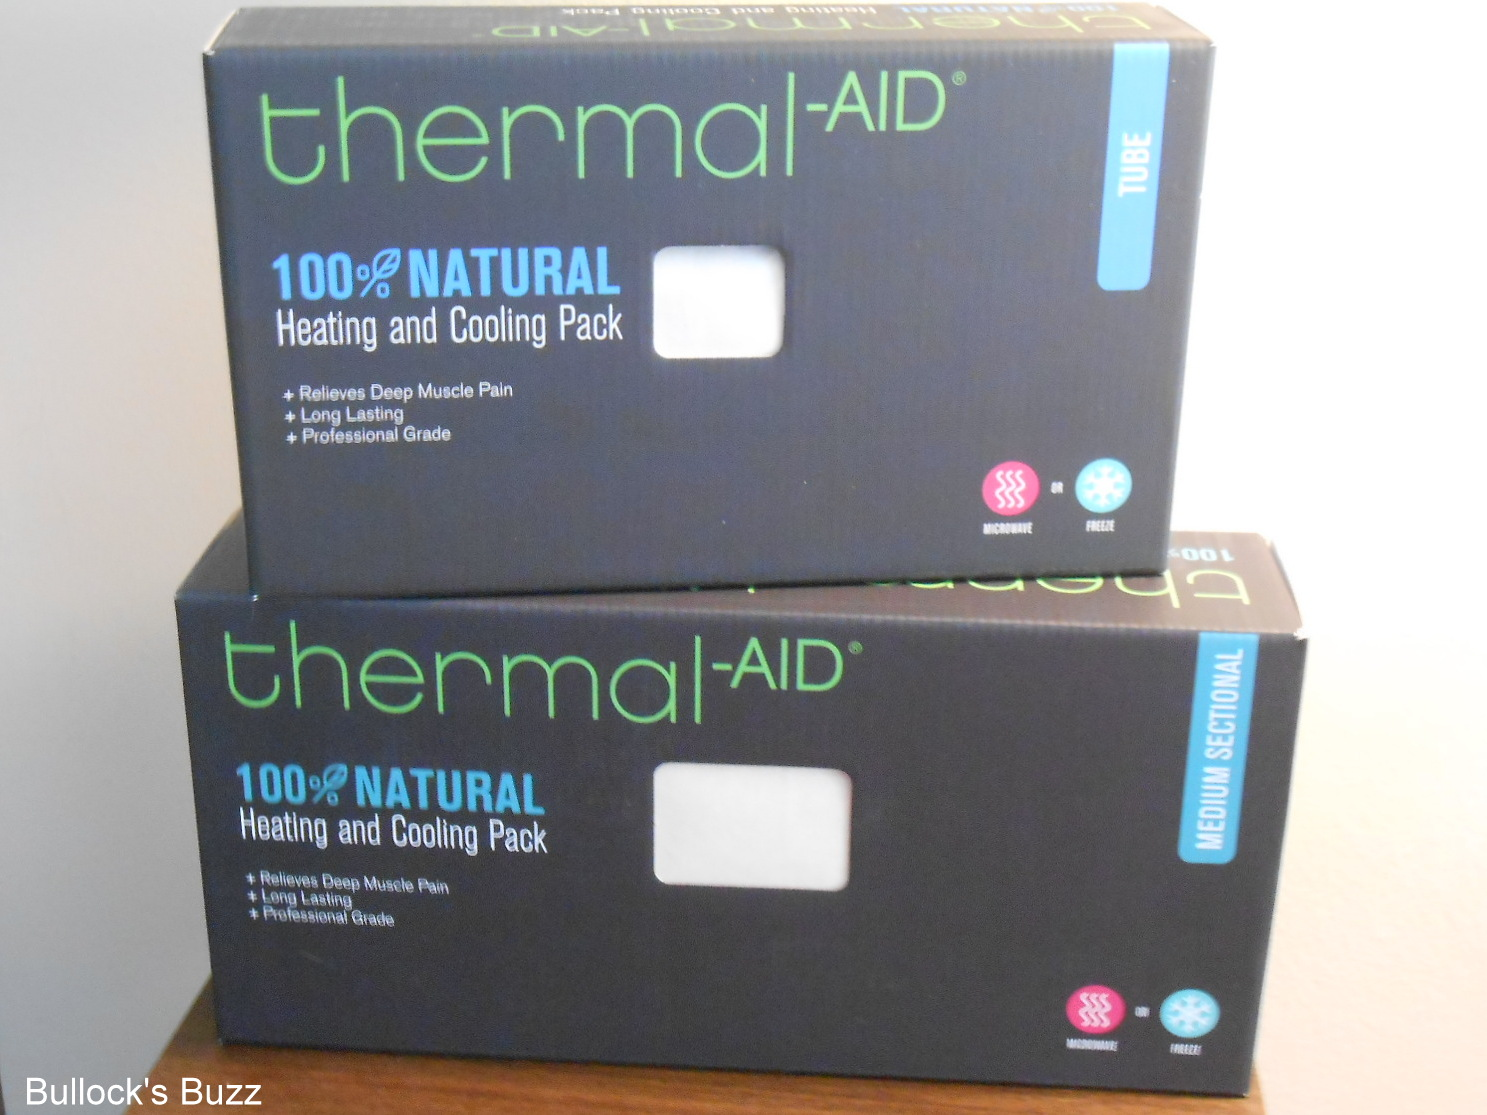 Thermal-Aid for Adult-Sized Ailments Too!